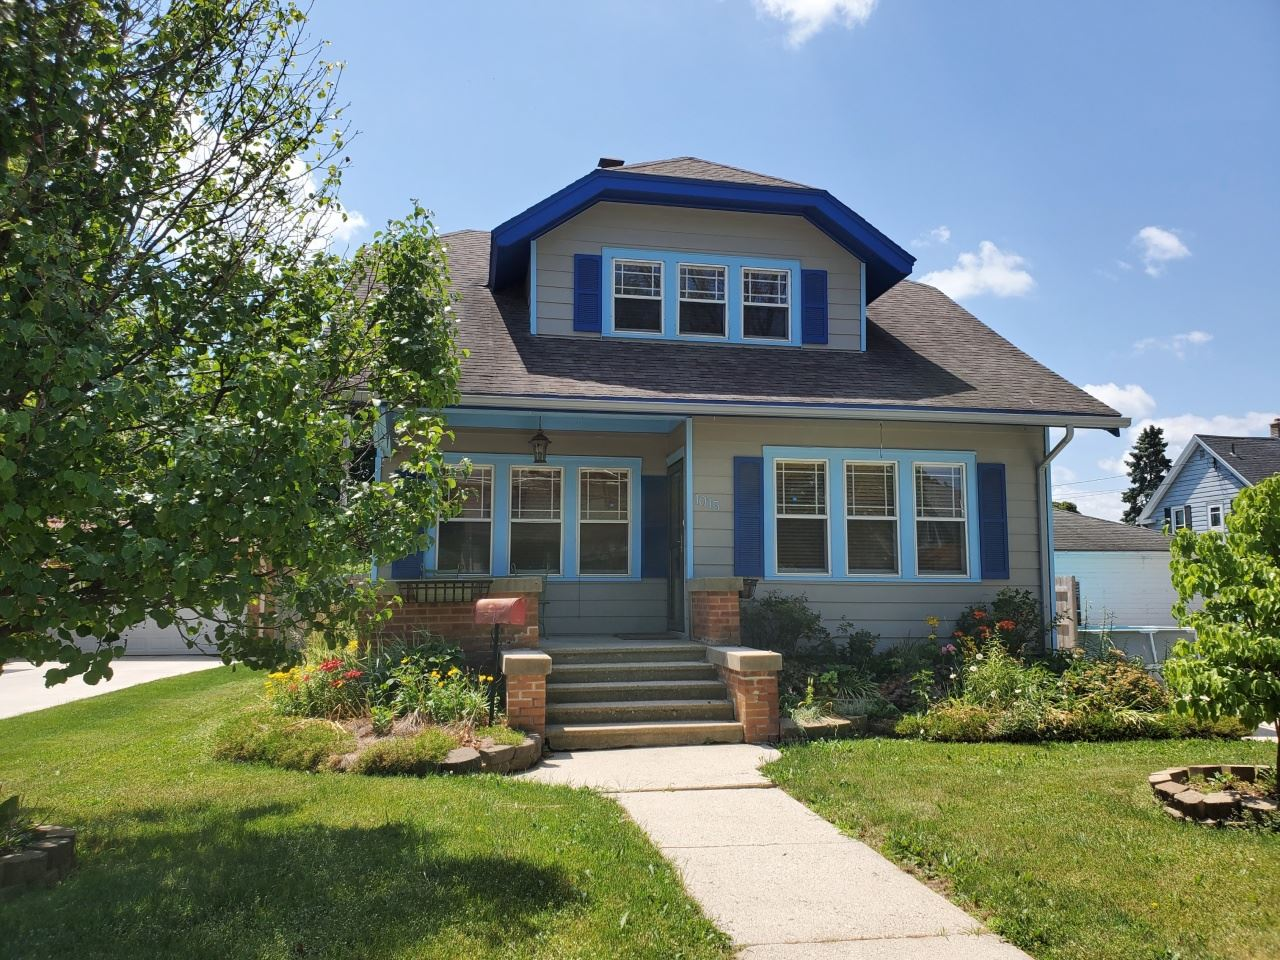 1015 Reed St, Plymouth, WI 53073 - #: 1697147